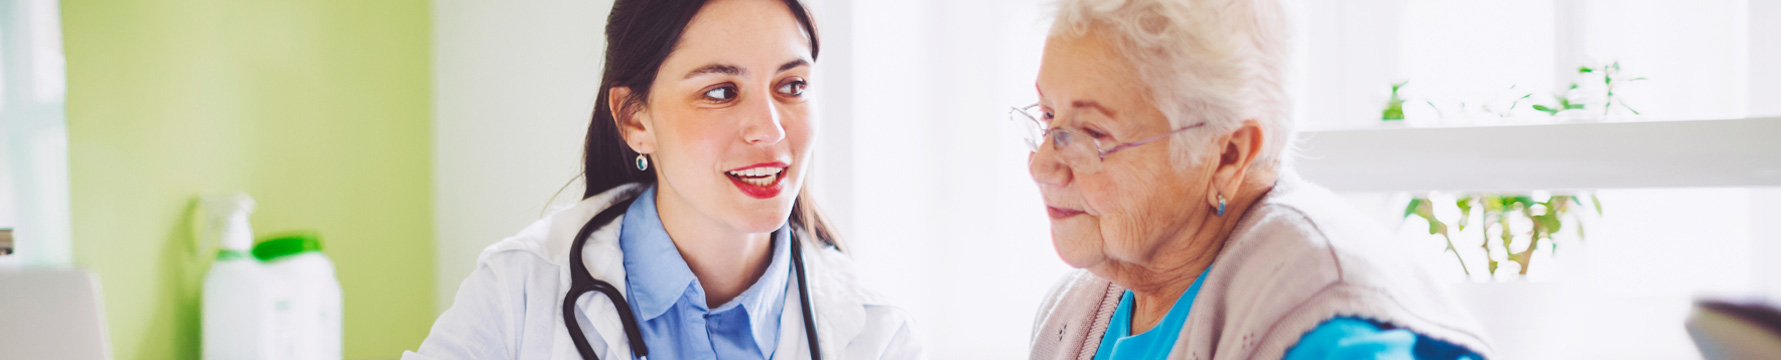 Doctor speaking with a senior patient